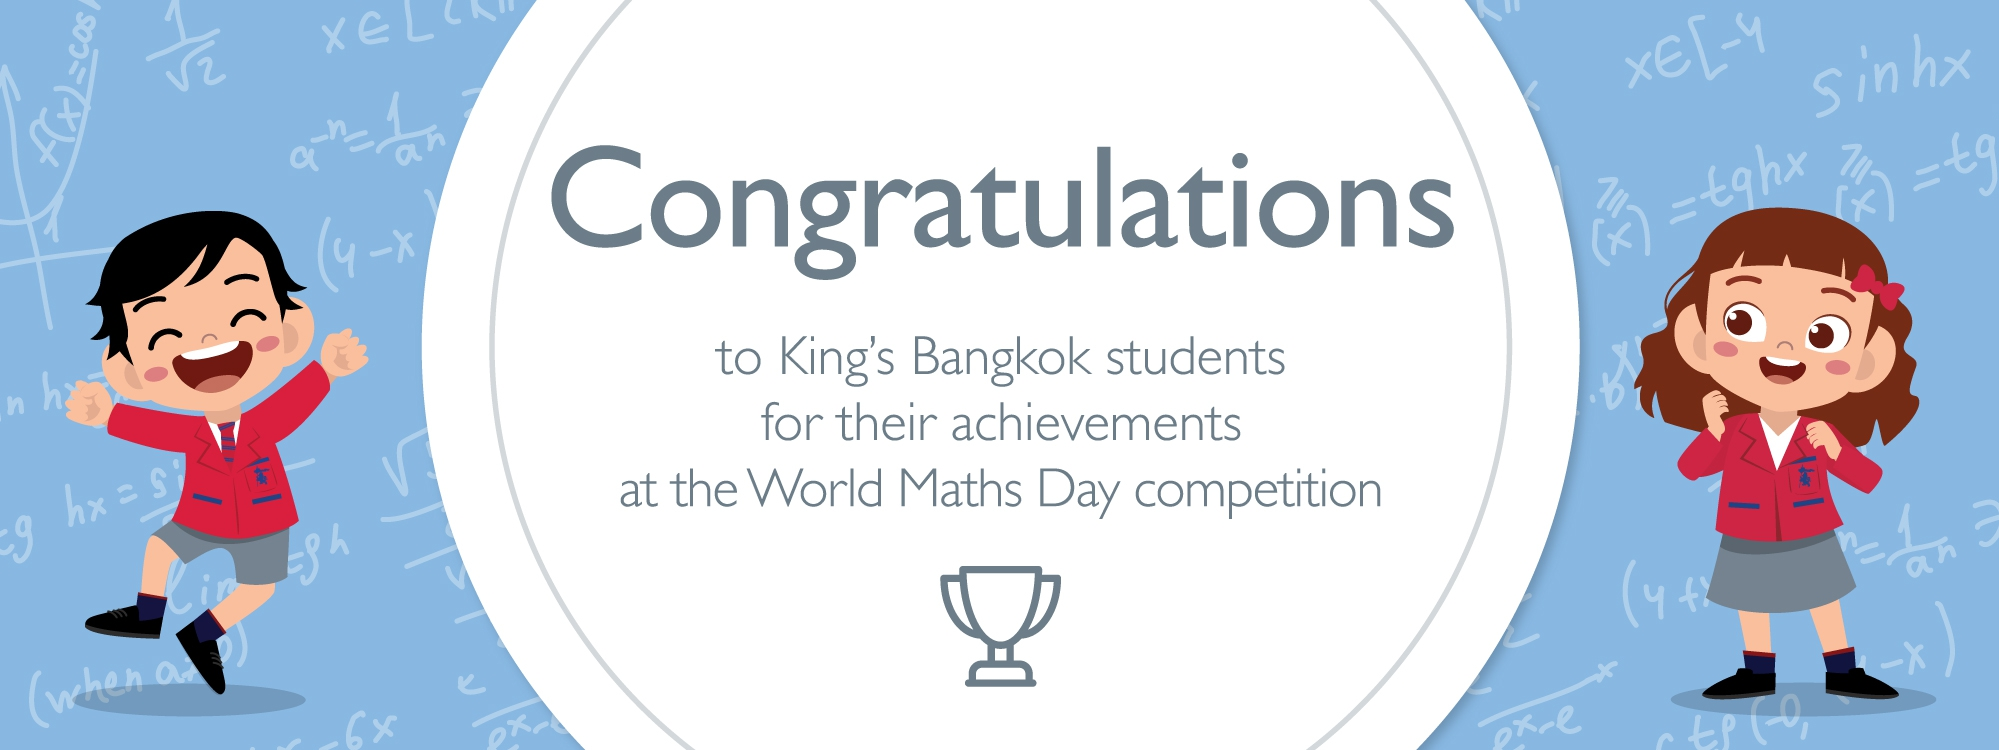 Congratulations to 7 champions of Thailand at the World Maths Day